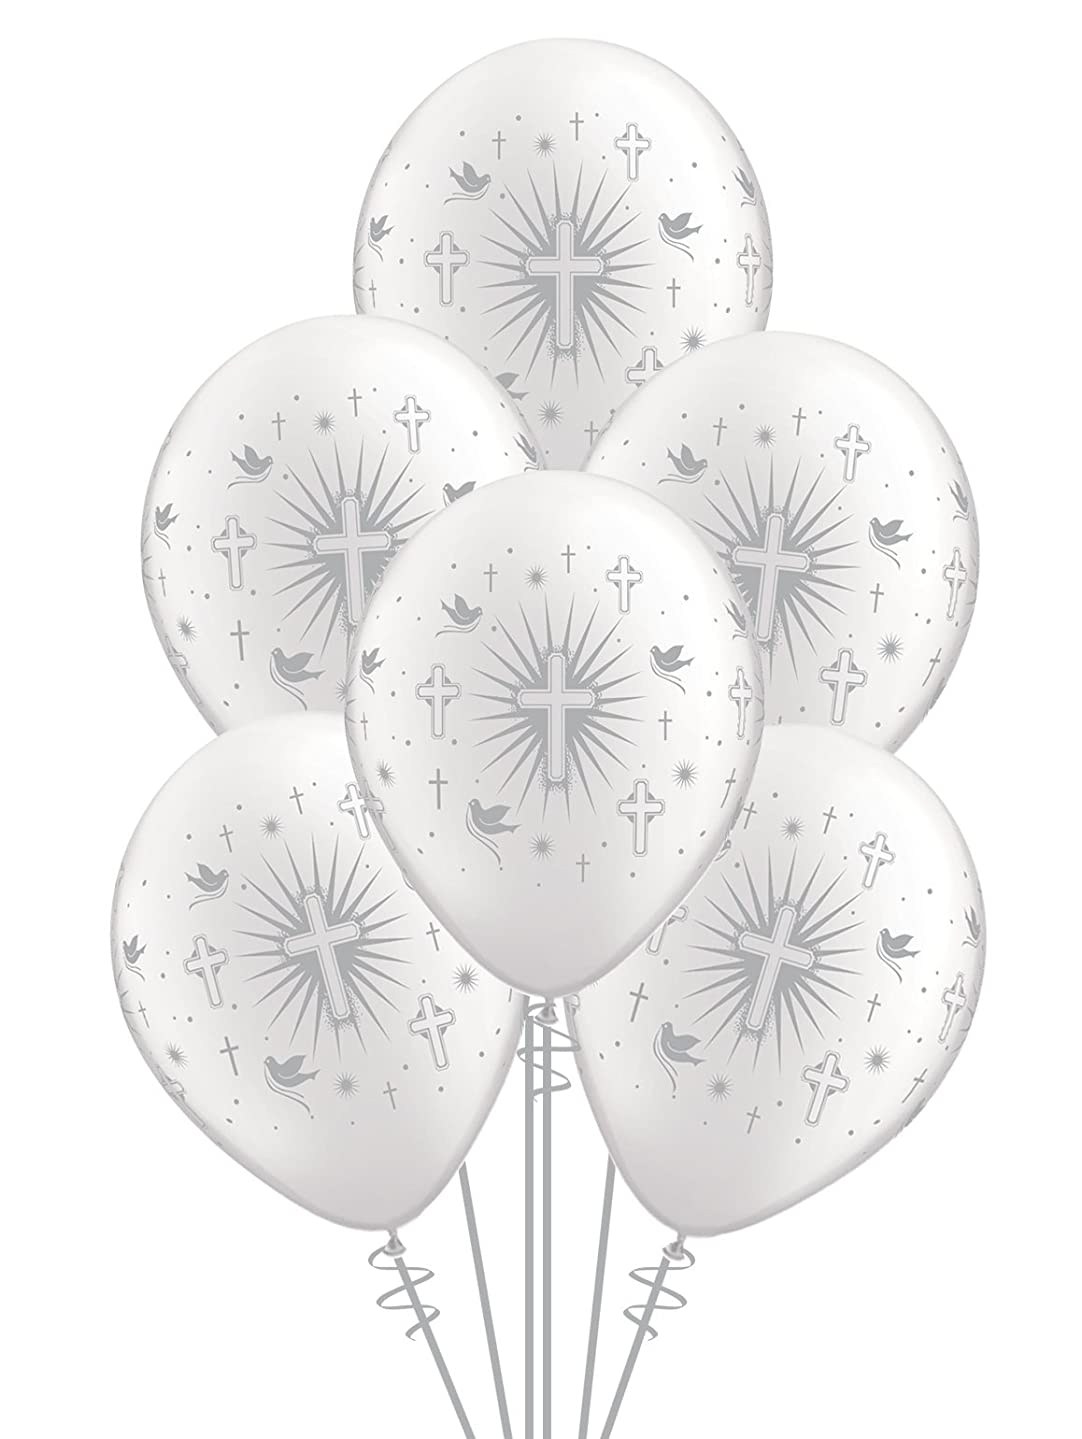 Qualatex Cross & Doves BiodegraQualatex Cross & Doves Biodegradable Latex Balloons, Pearl White with Silver Prints All-Around, 11-Inches (12-Units)